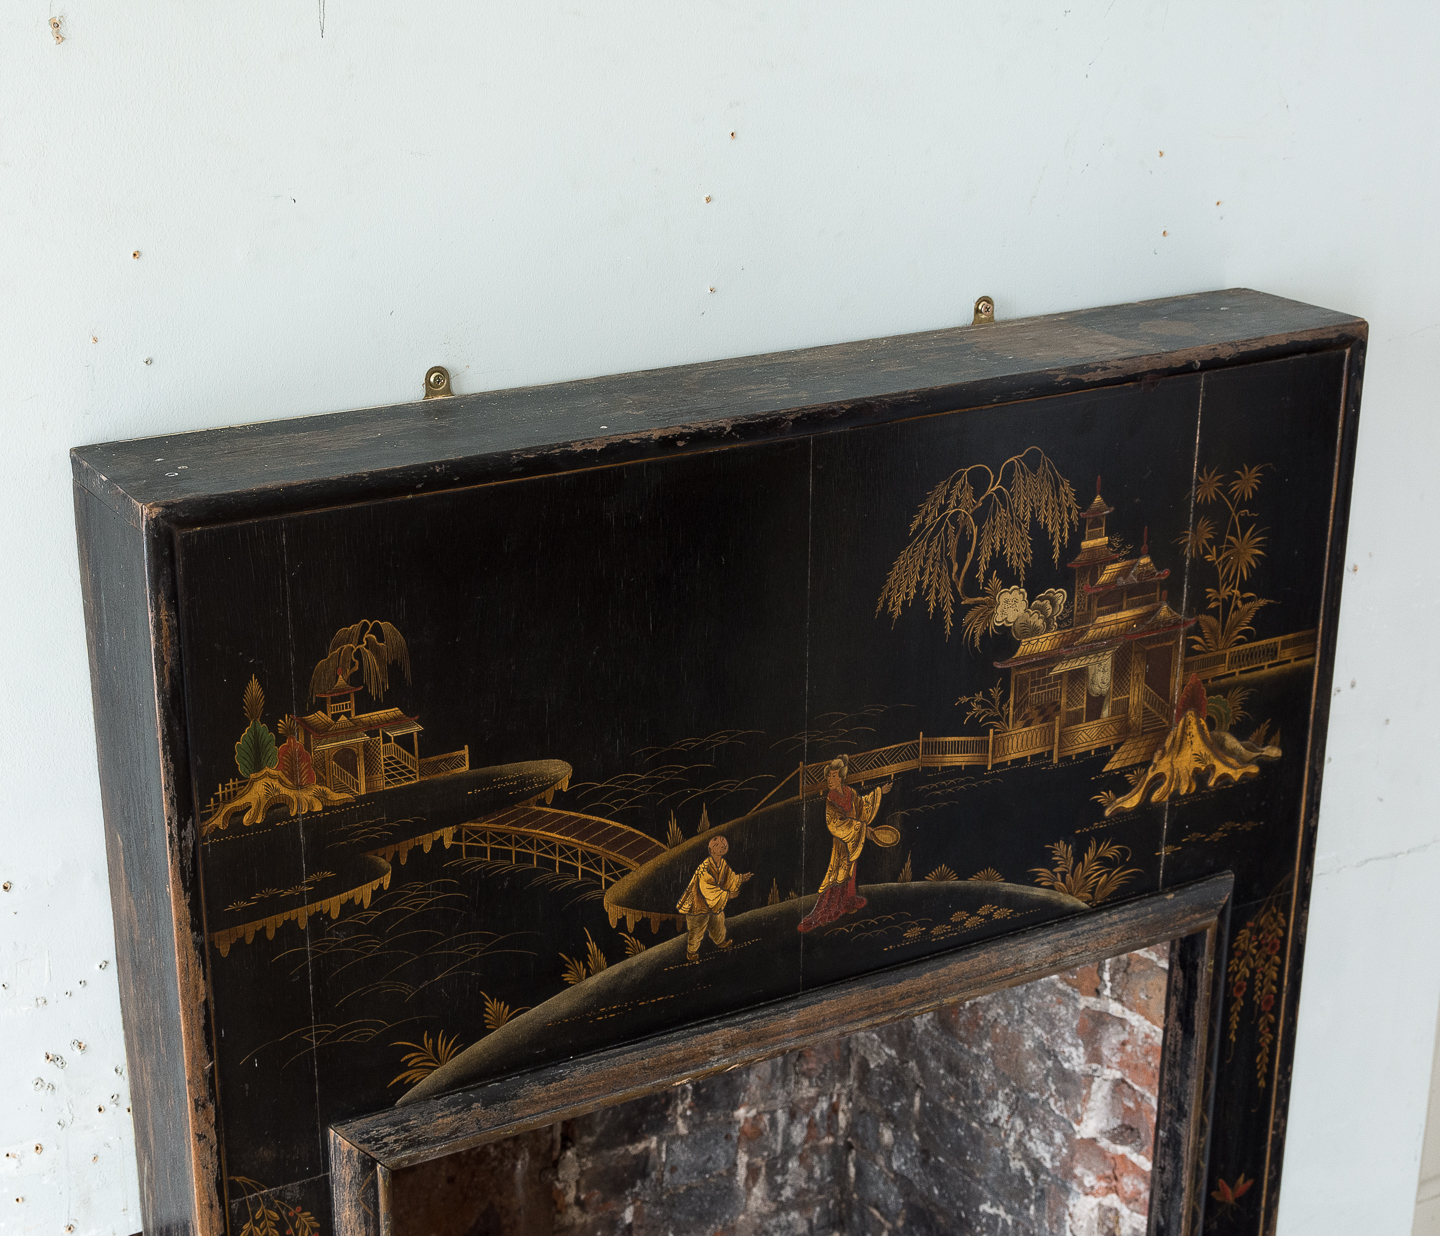 1920s Chinoiserie Revival fire surround, -140065